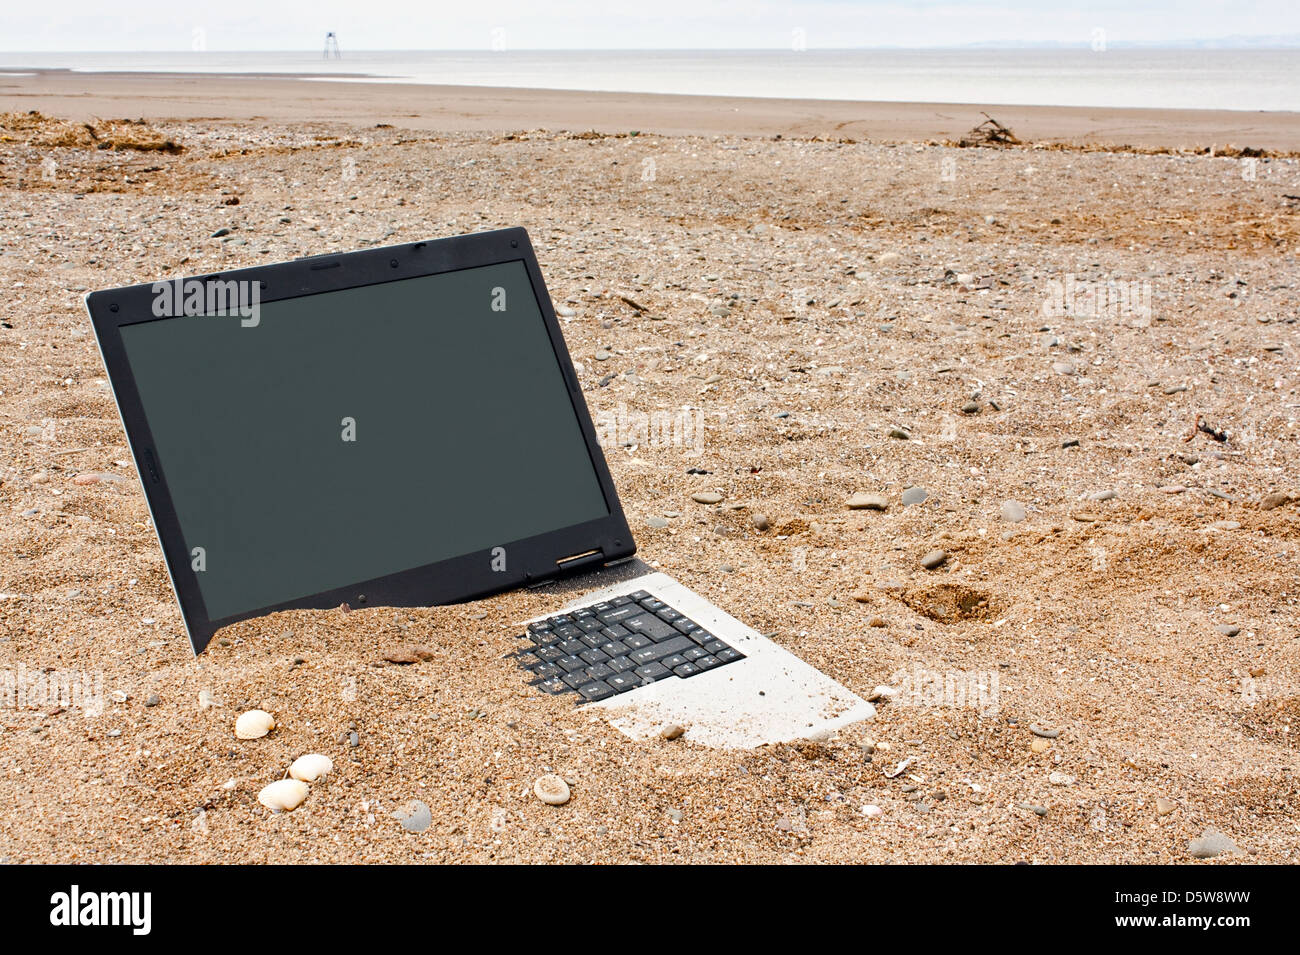 obsolete laptop personal computer at the beach good concept for out of date technology or for travel websites - Stock Image